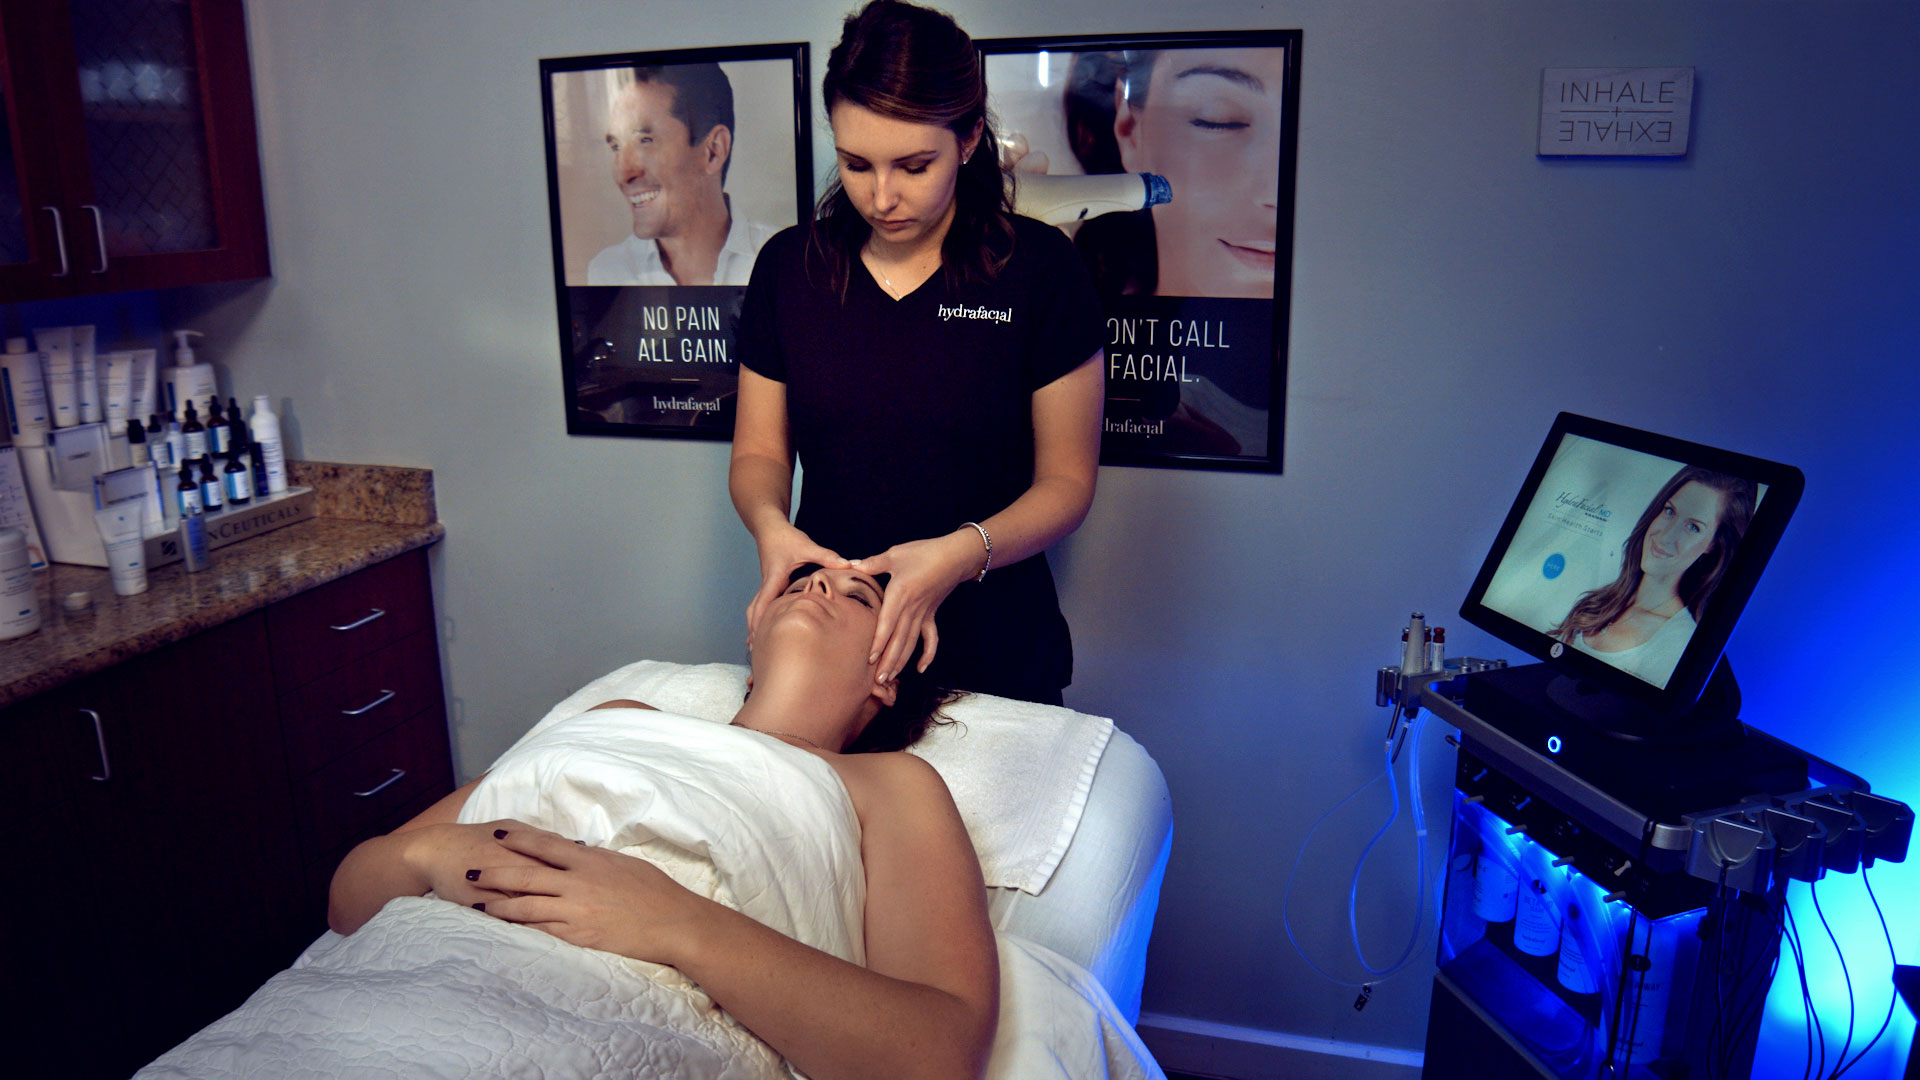 HydraFacial Treatment Photography Performed by Redmonkie in Fort Myers, FL.